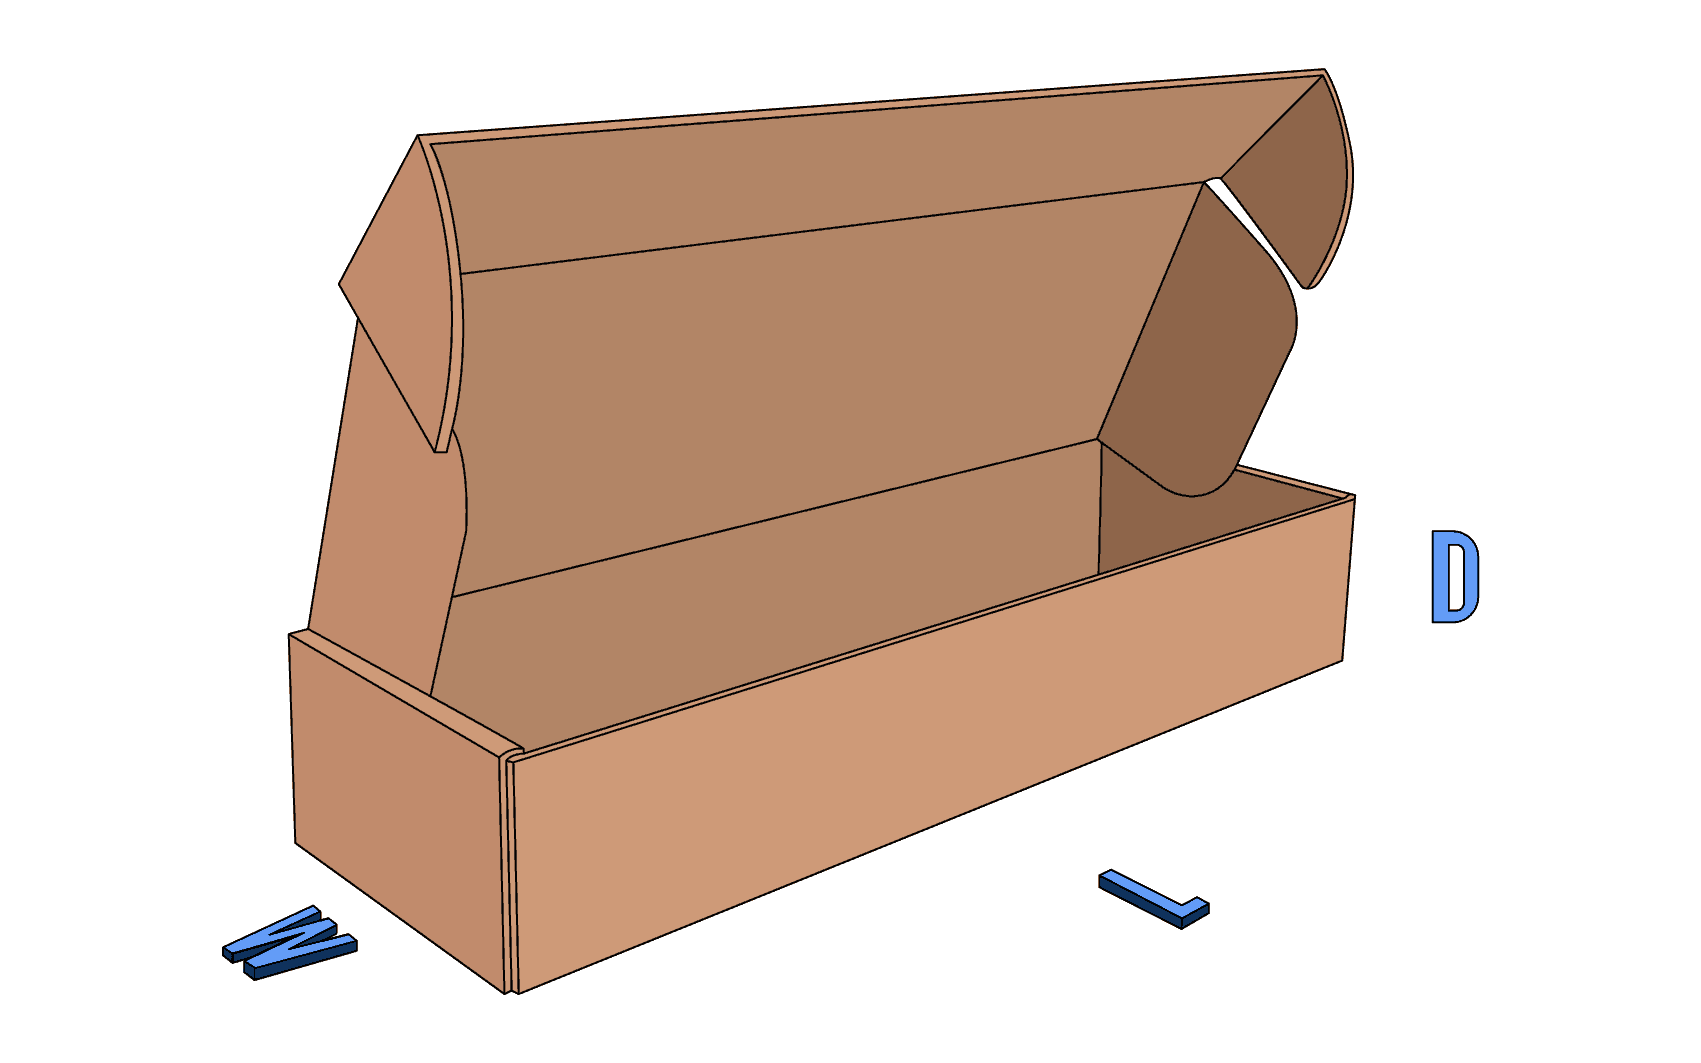 Roll End Tuck Front (RETF)